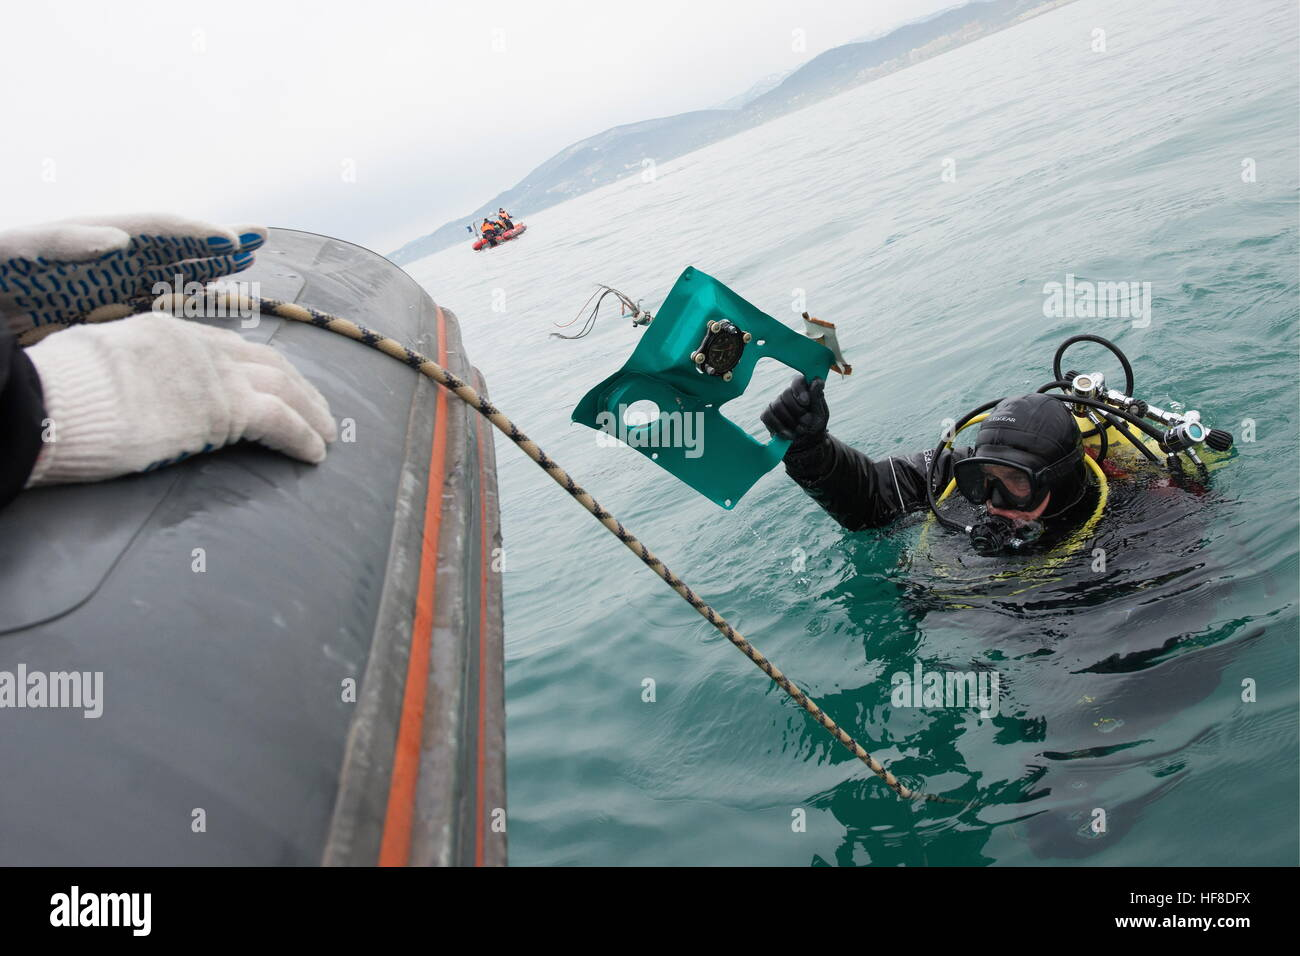 SOCHI, RUSSIA - DECEMBER 28, 2016: A diver during a search and rescue operation at the crash site of a Russian Defence - Stock Image